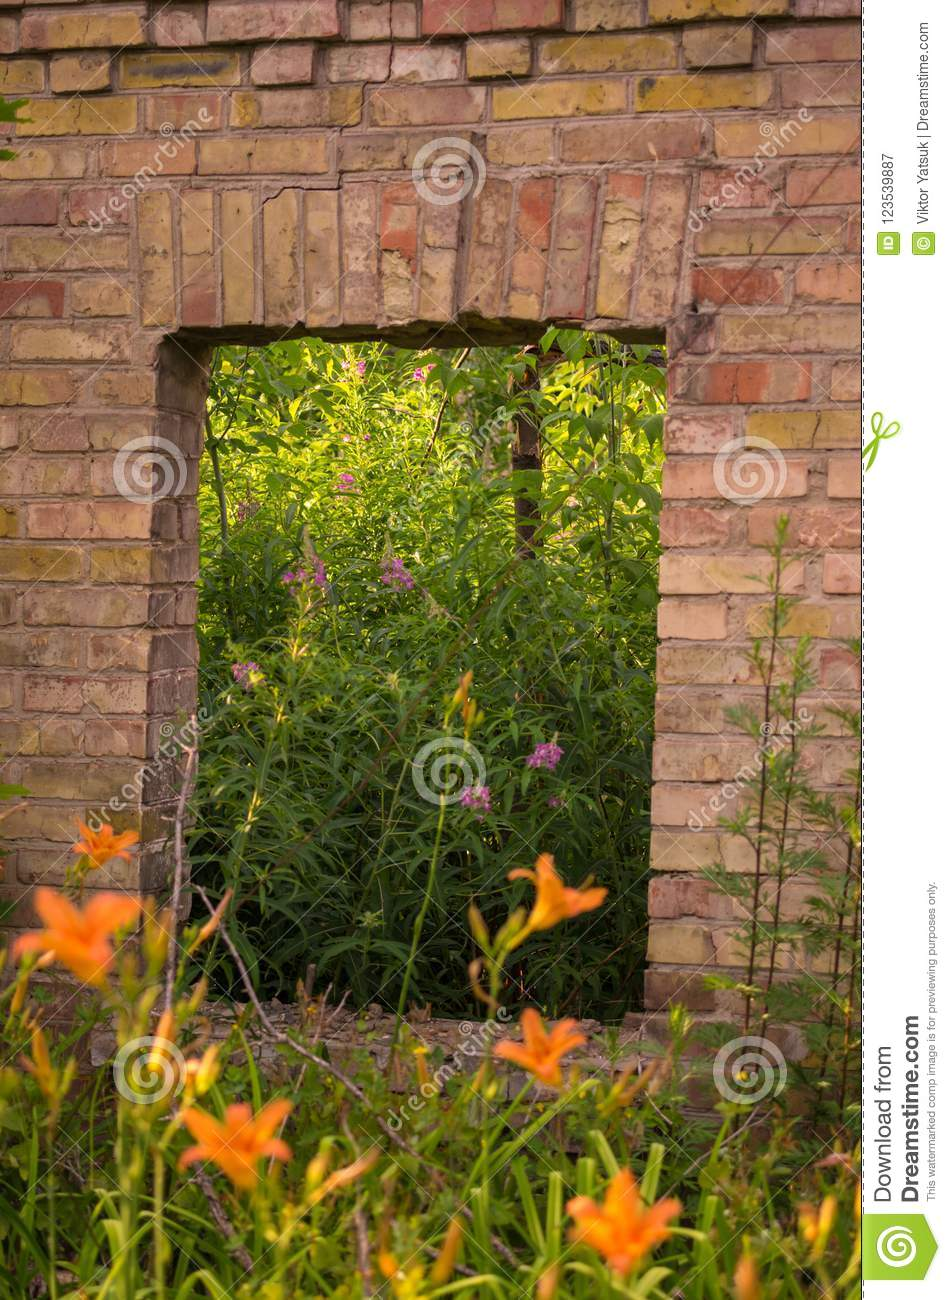 Window with flowers. A window into nature.